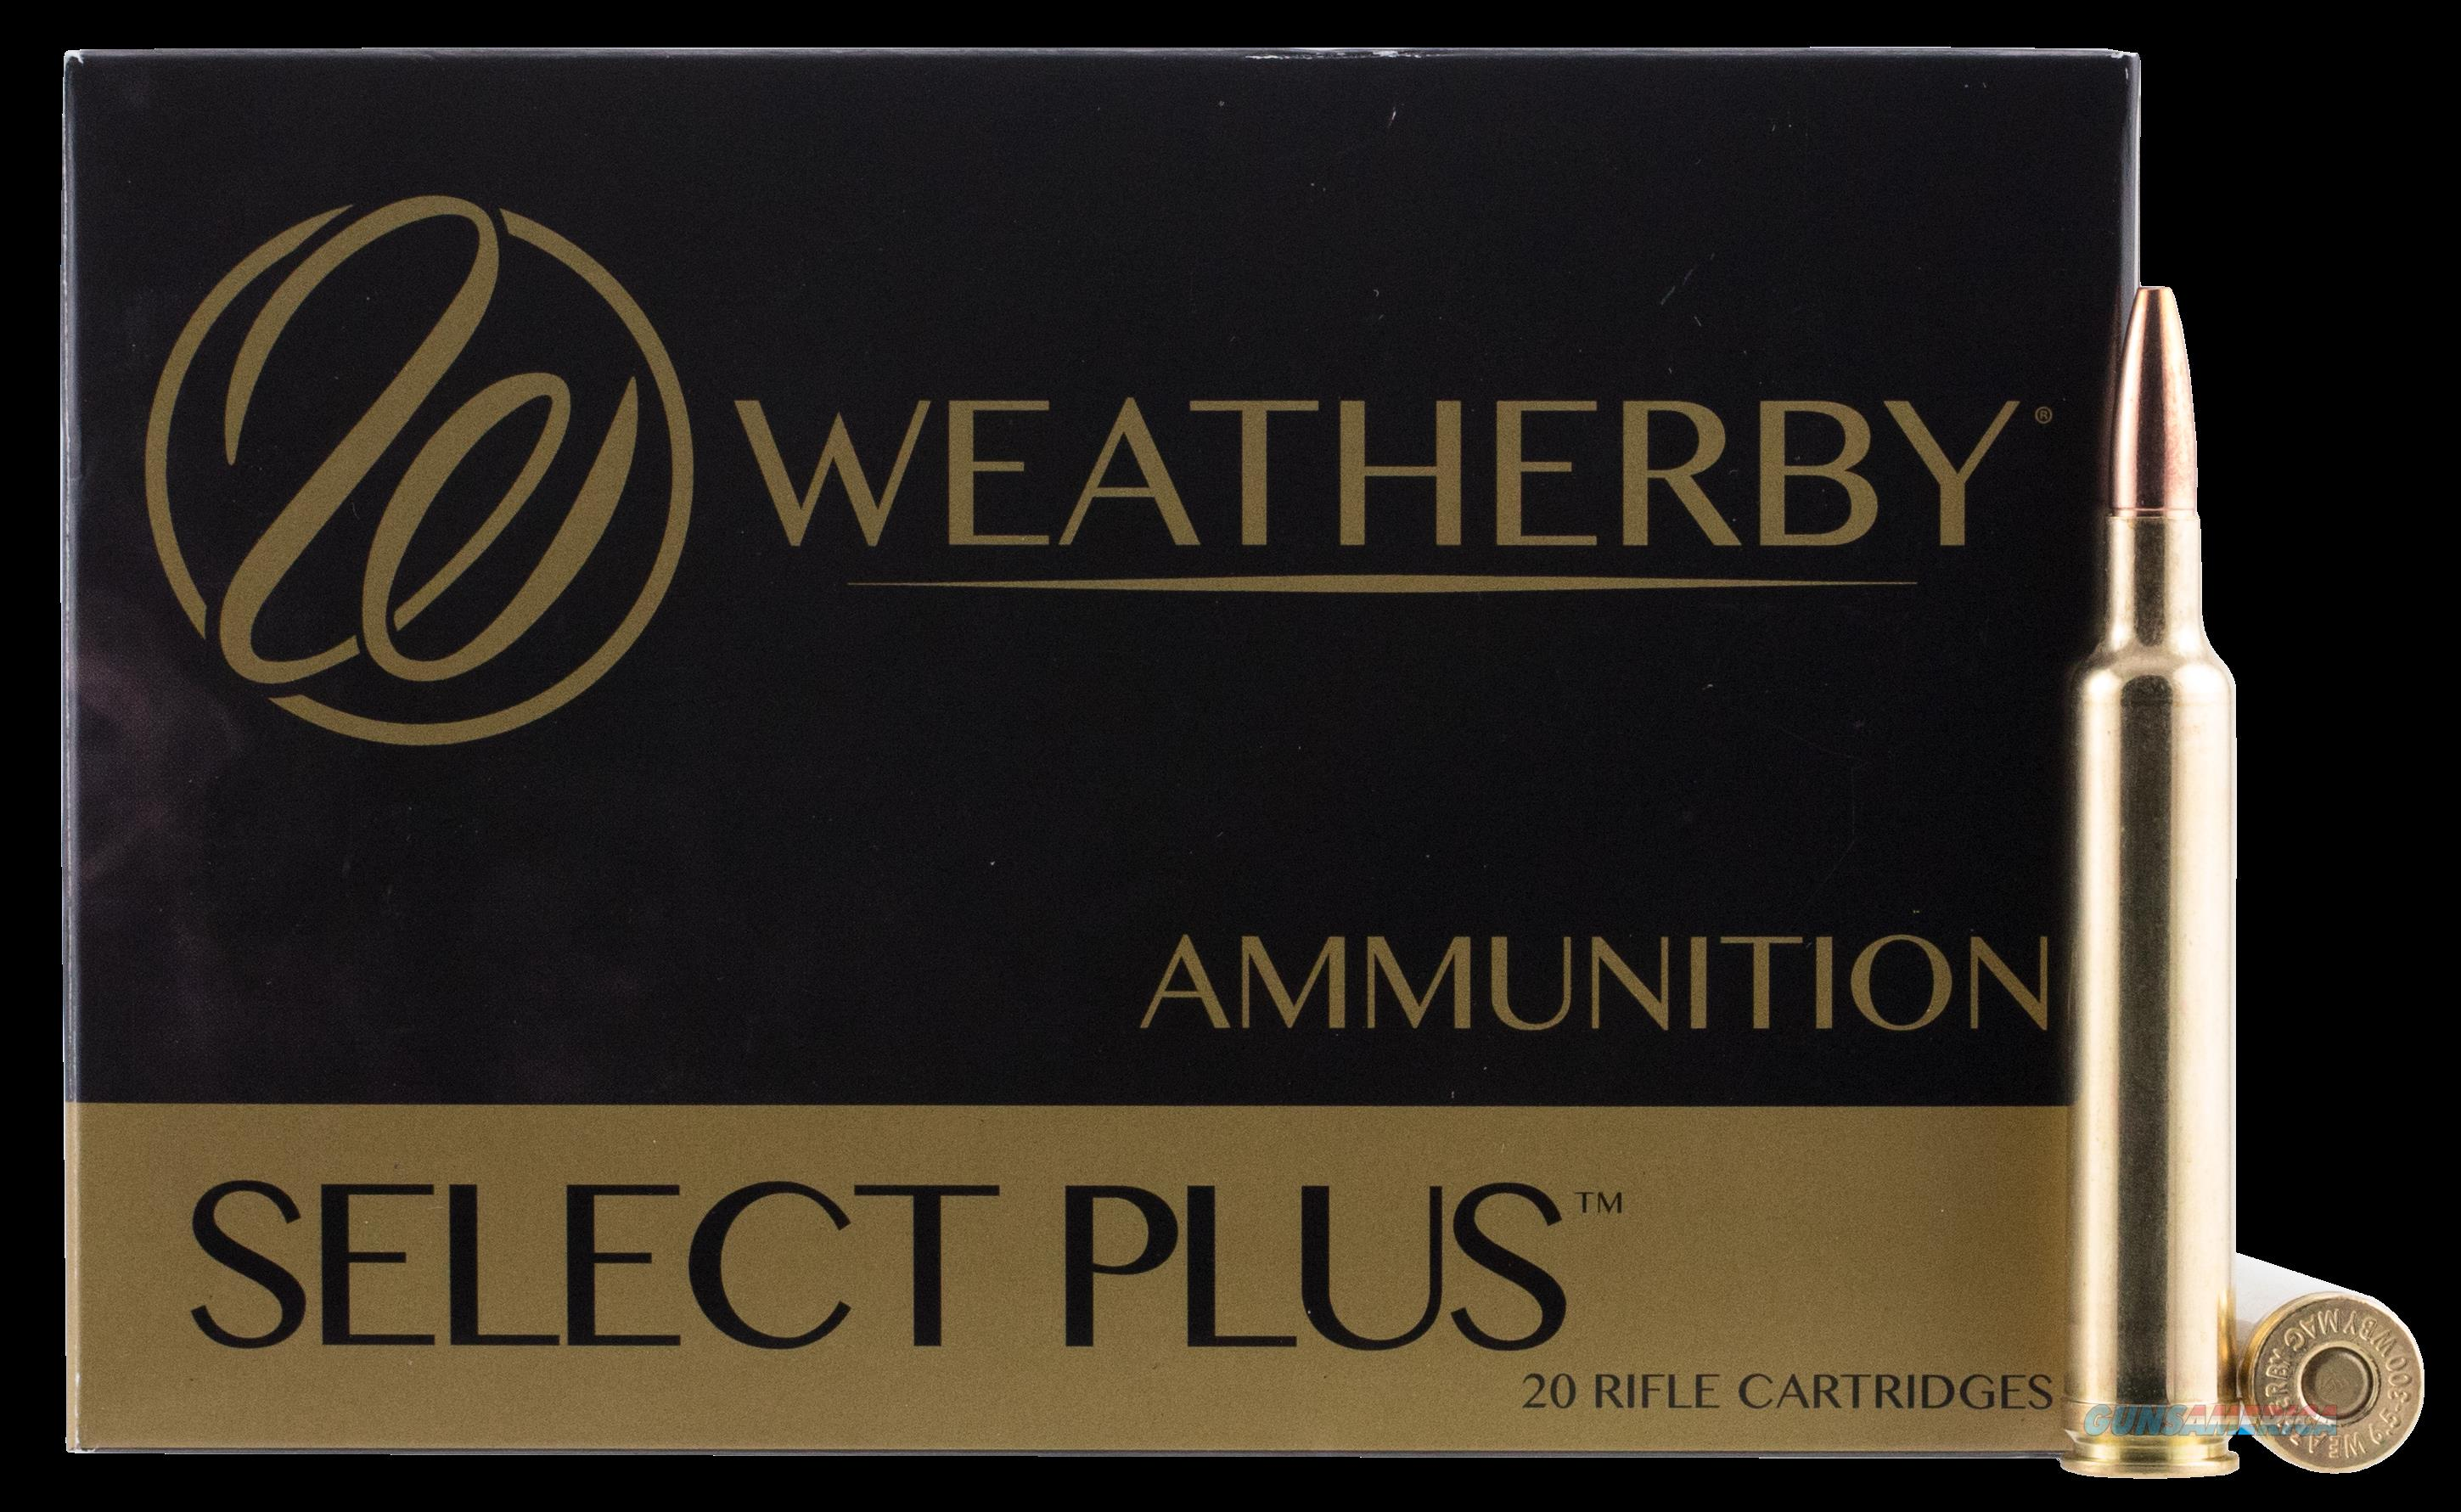 Weatherby Select Plus, Wthby N65rpm140acb 6.5wby Rpm 140 Accubond   20-10  Guns > Pistols > 1911 Pistol Copies (non-Colt)